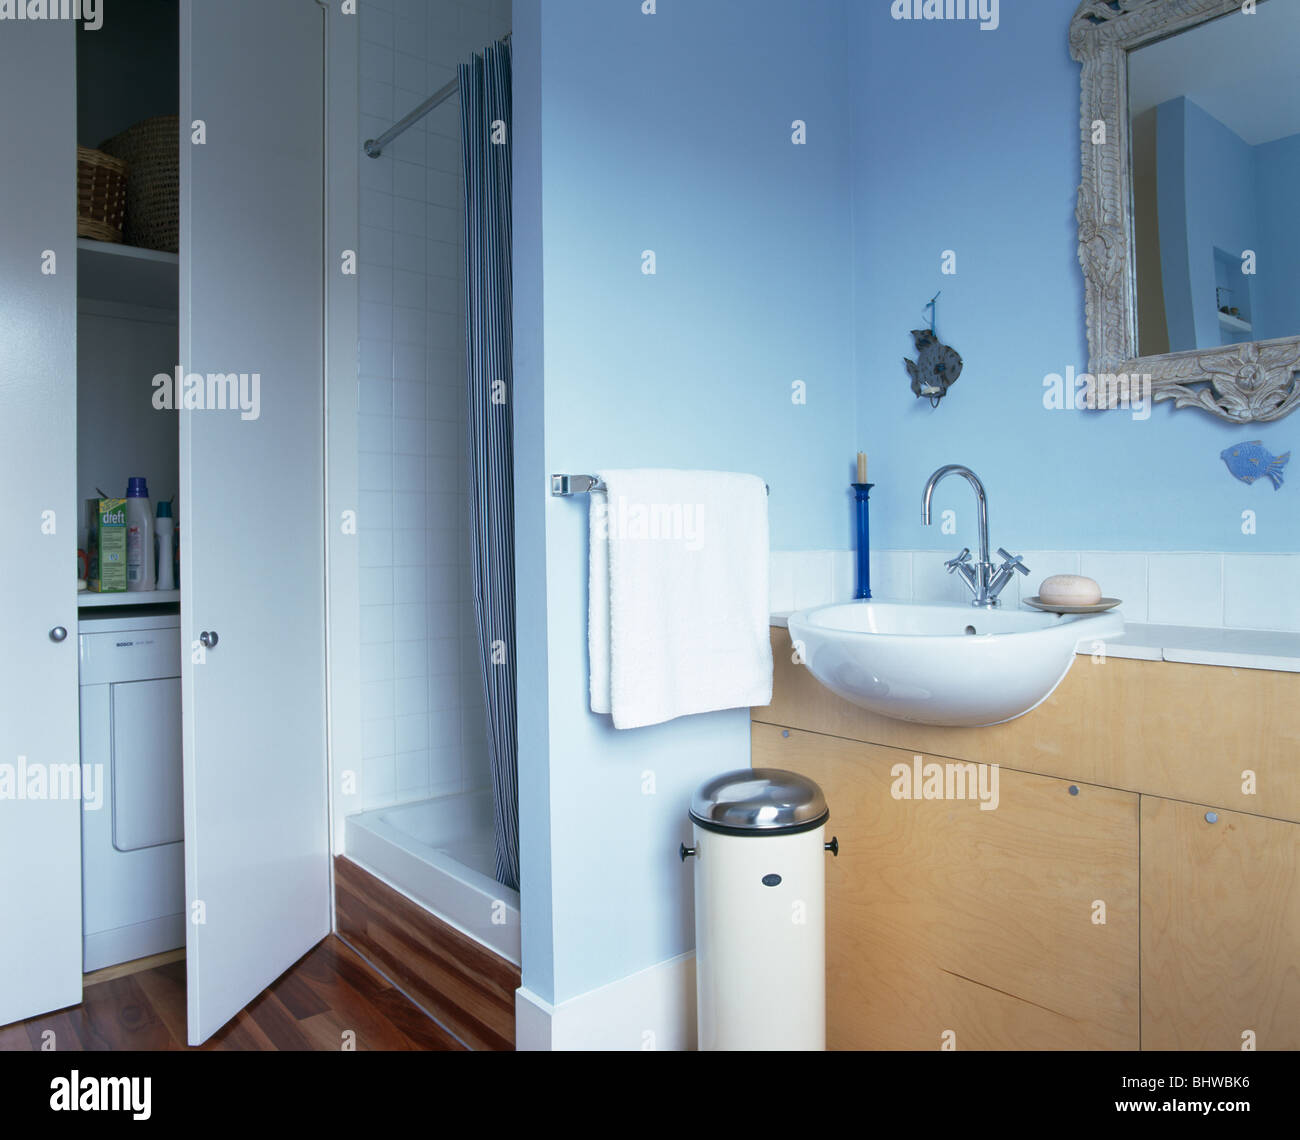 Shower Unit Stock Photos & Shower Unit Stock Images - Alamy